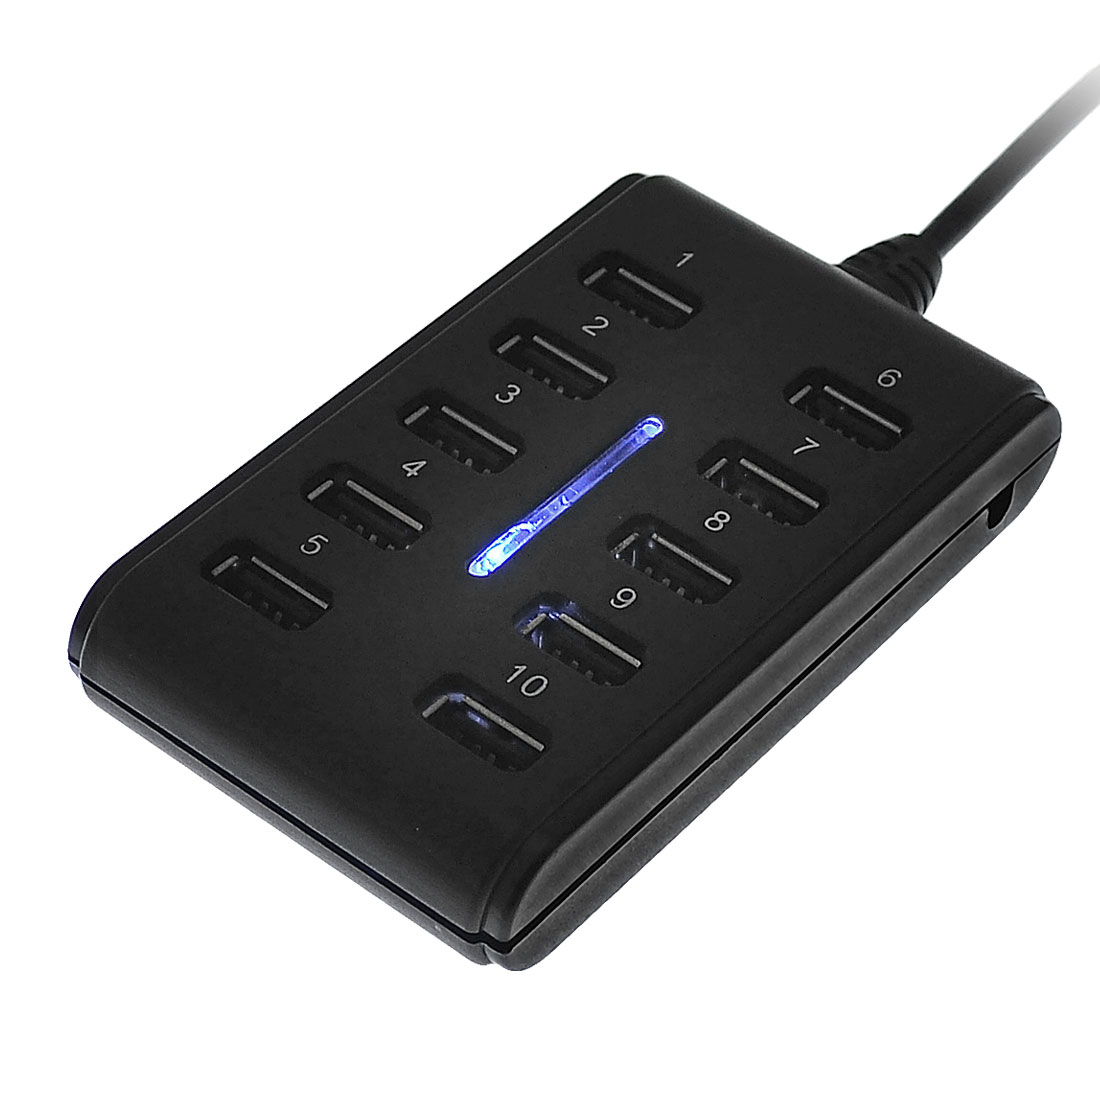 PC Notebook Portable 10 Ports USB 2.0 High Speed Hub Adapter Black